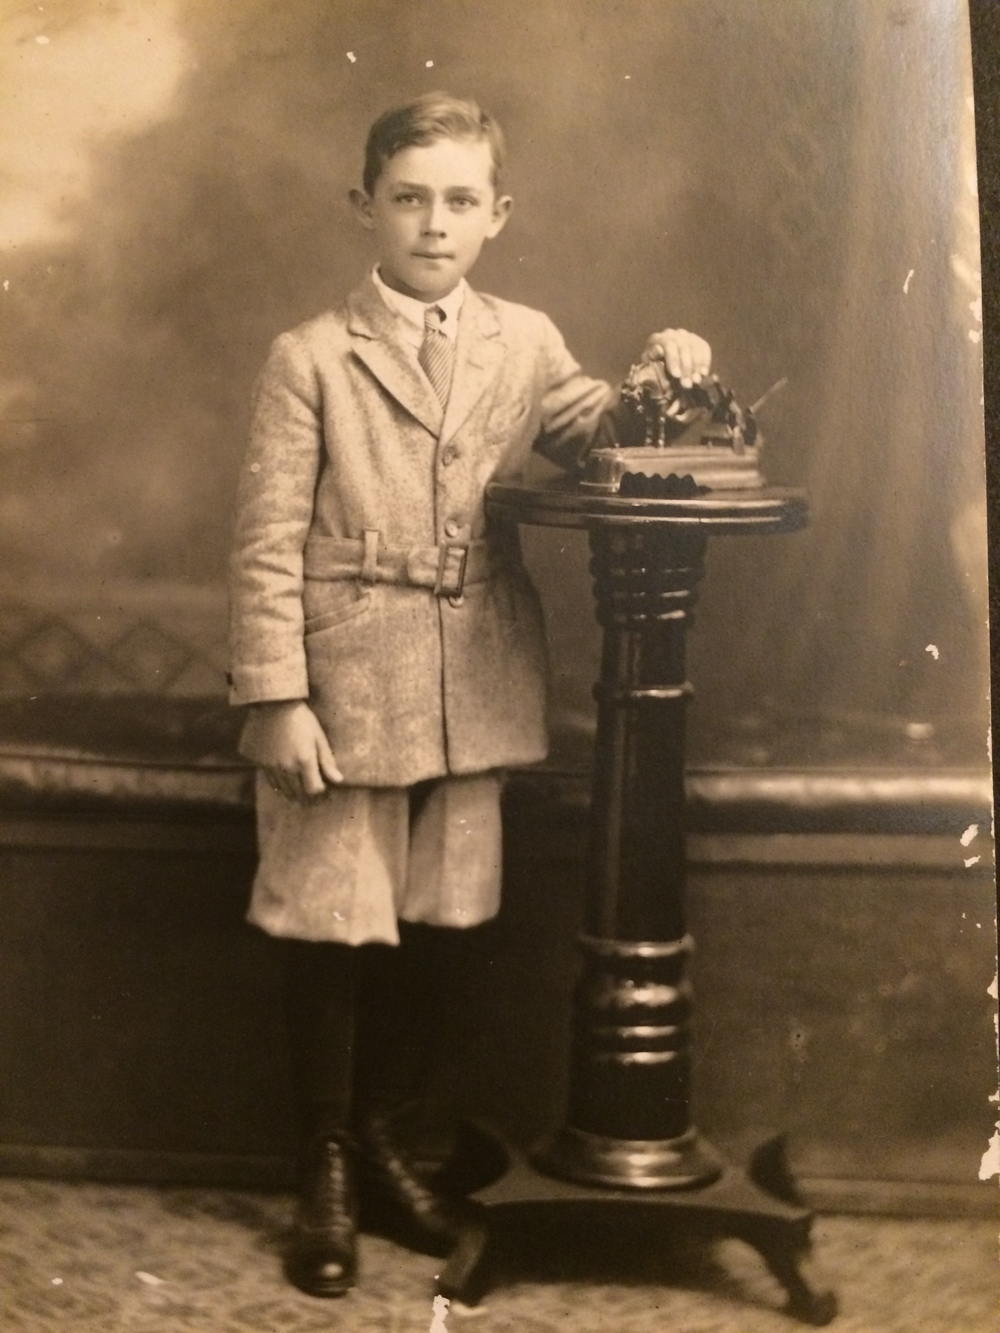 My young grandfather, just around the time he'd lose his eye.